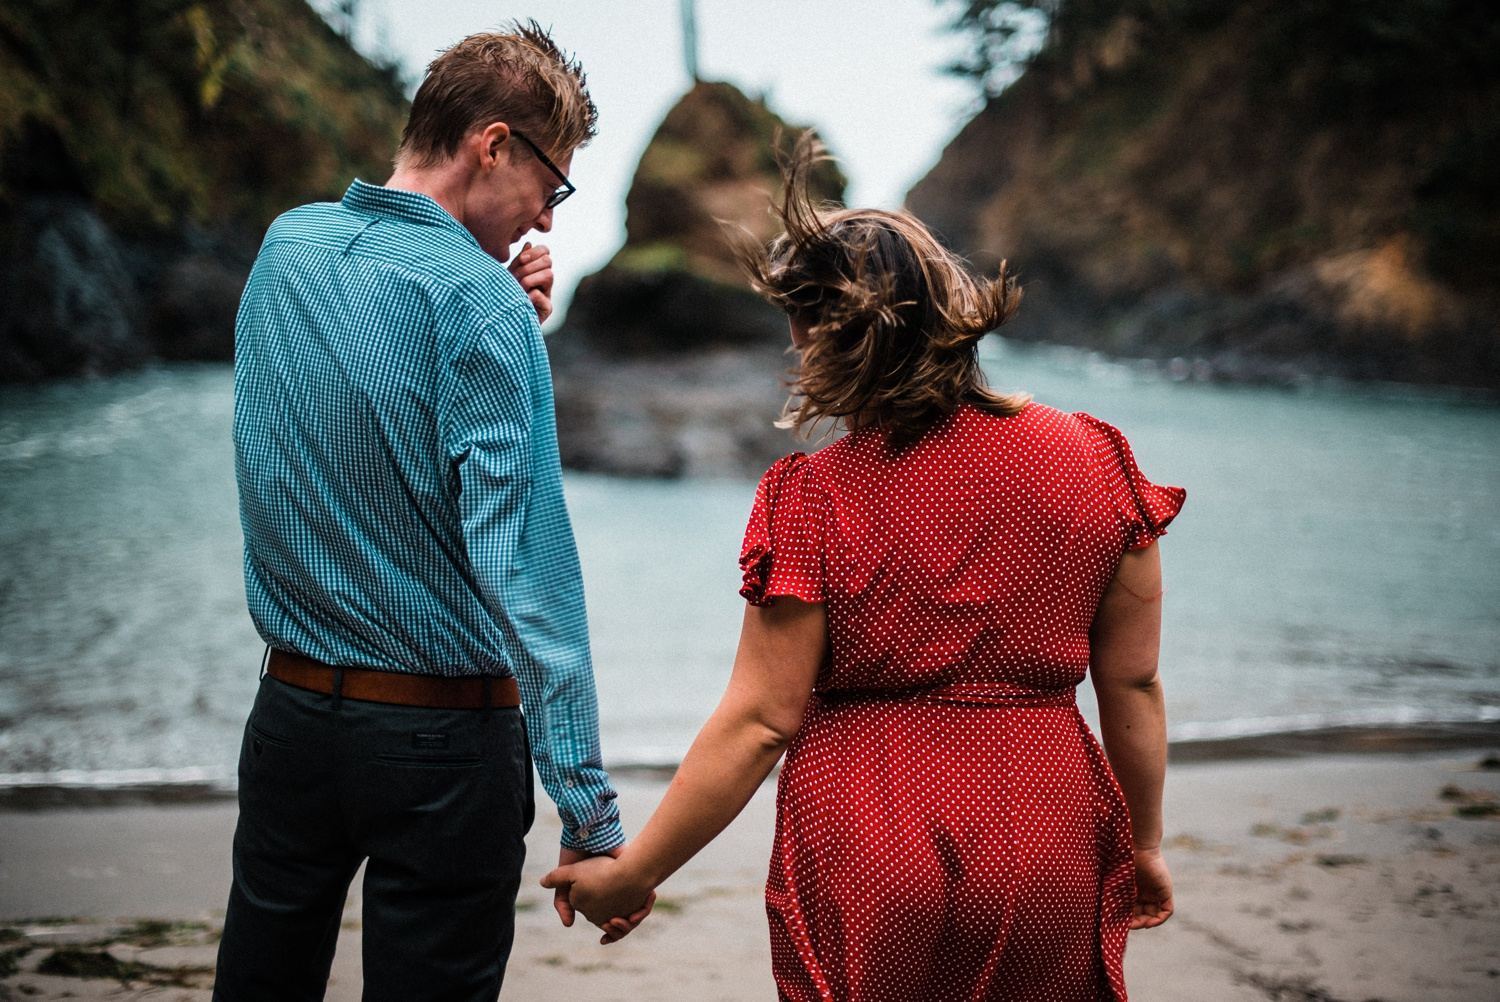 Cape_Disappointment_Engagment_Kailey_Alex_The_Foxes_Photography_068.jpg